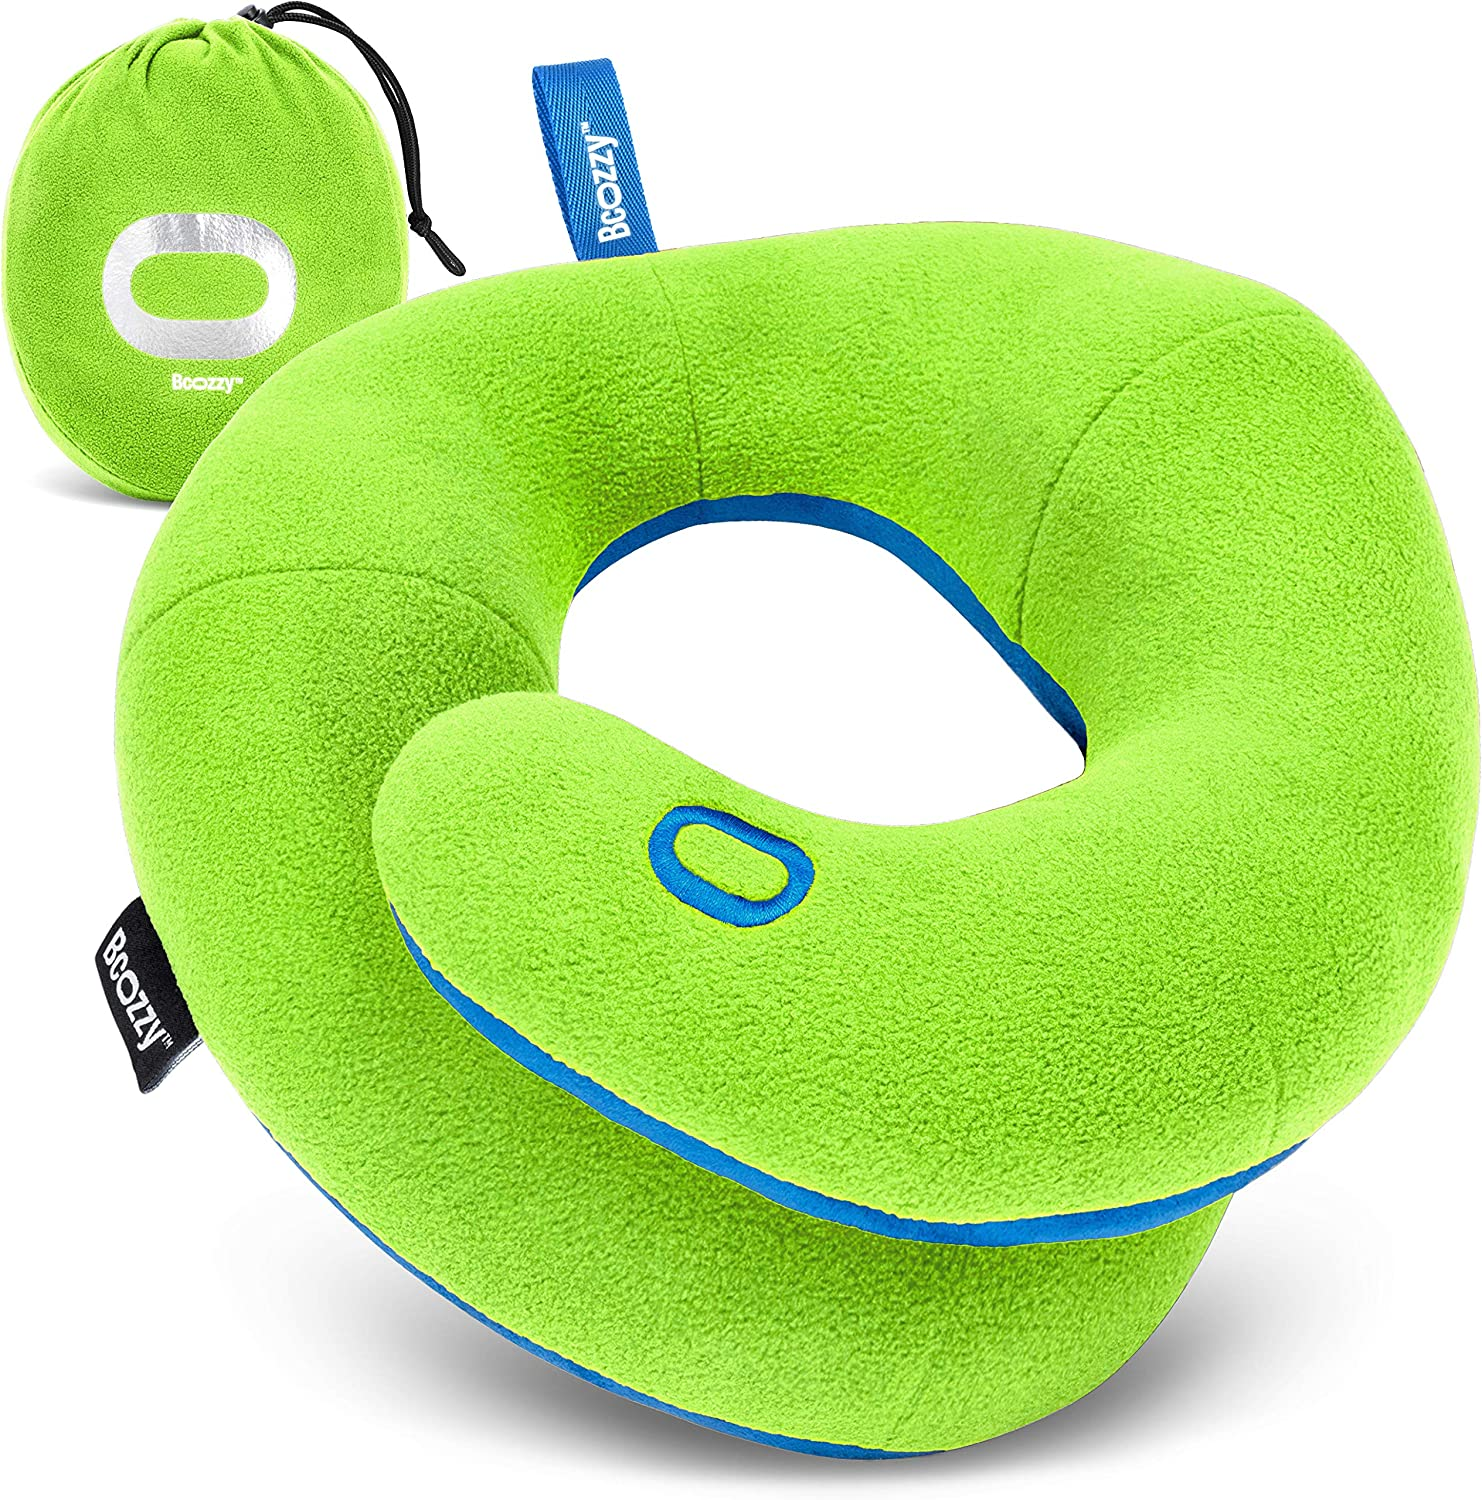 Gray Stops The Head from Falling Forward BCOZZY Kids Chin Supporting Travel Pillow for 8-12 Y//O Medium Size Soft Comfortable Road Trip Essential Washable